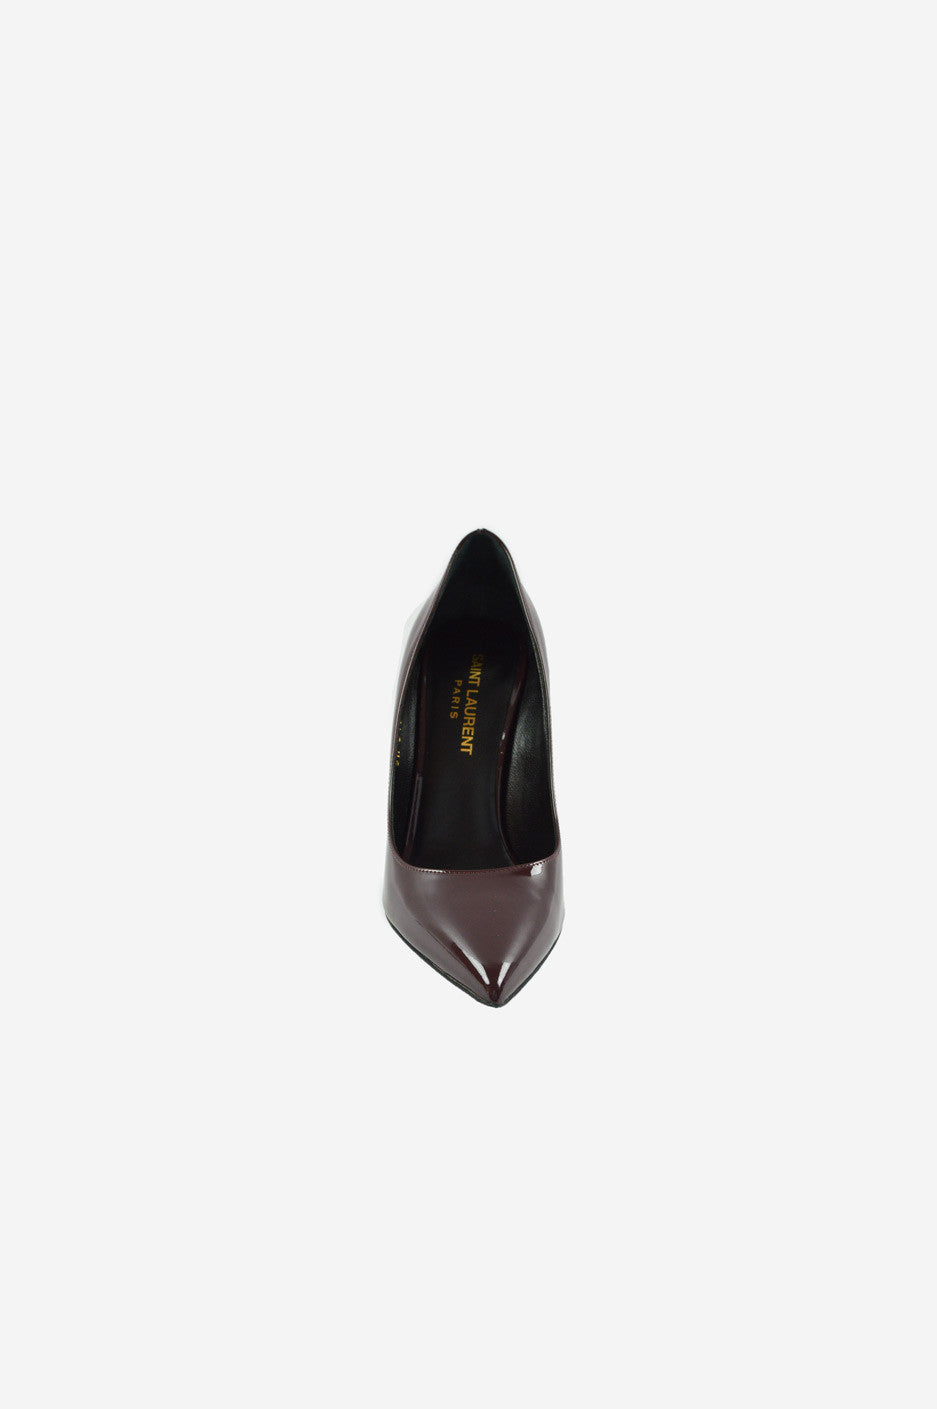 Burgundy Patent Leather Pointed-Toe Pumps